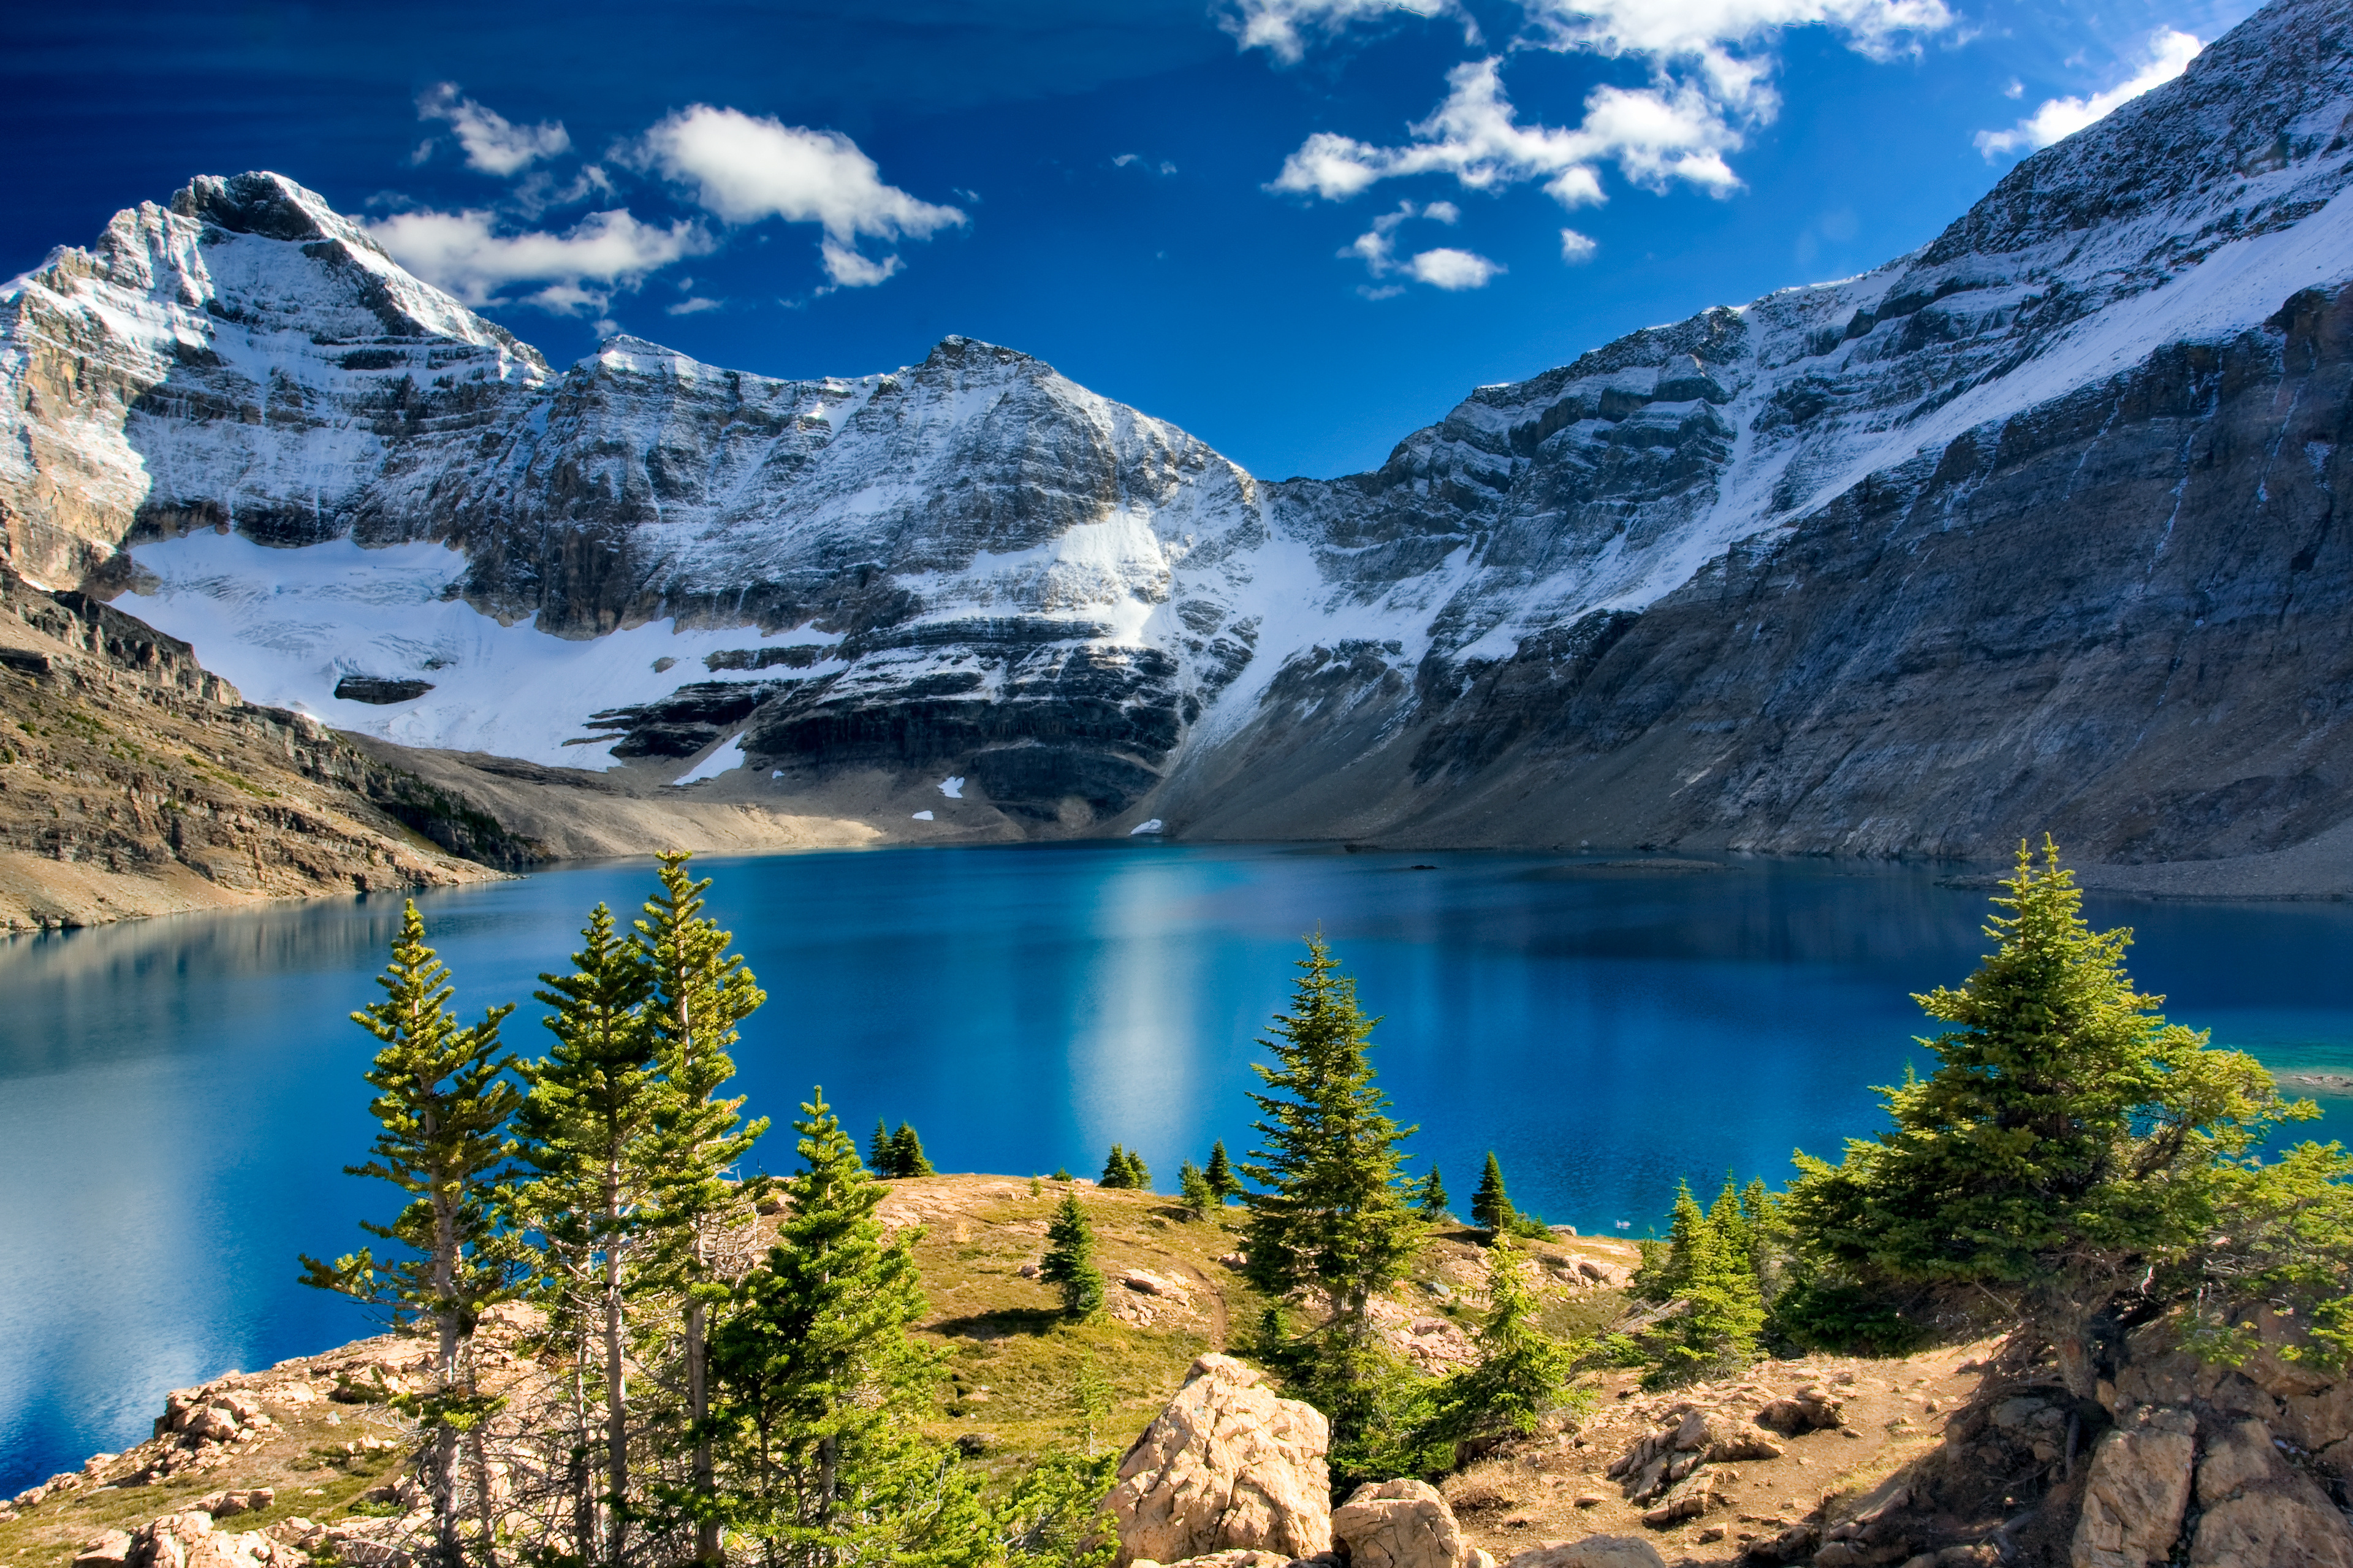 7-Day Ultimate Canadian Rockies, Glacier View Tour from Vancouver/Seattle